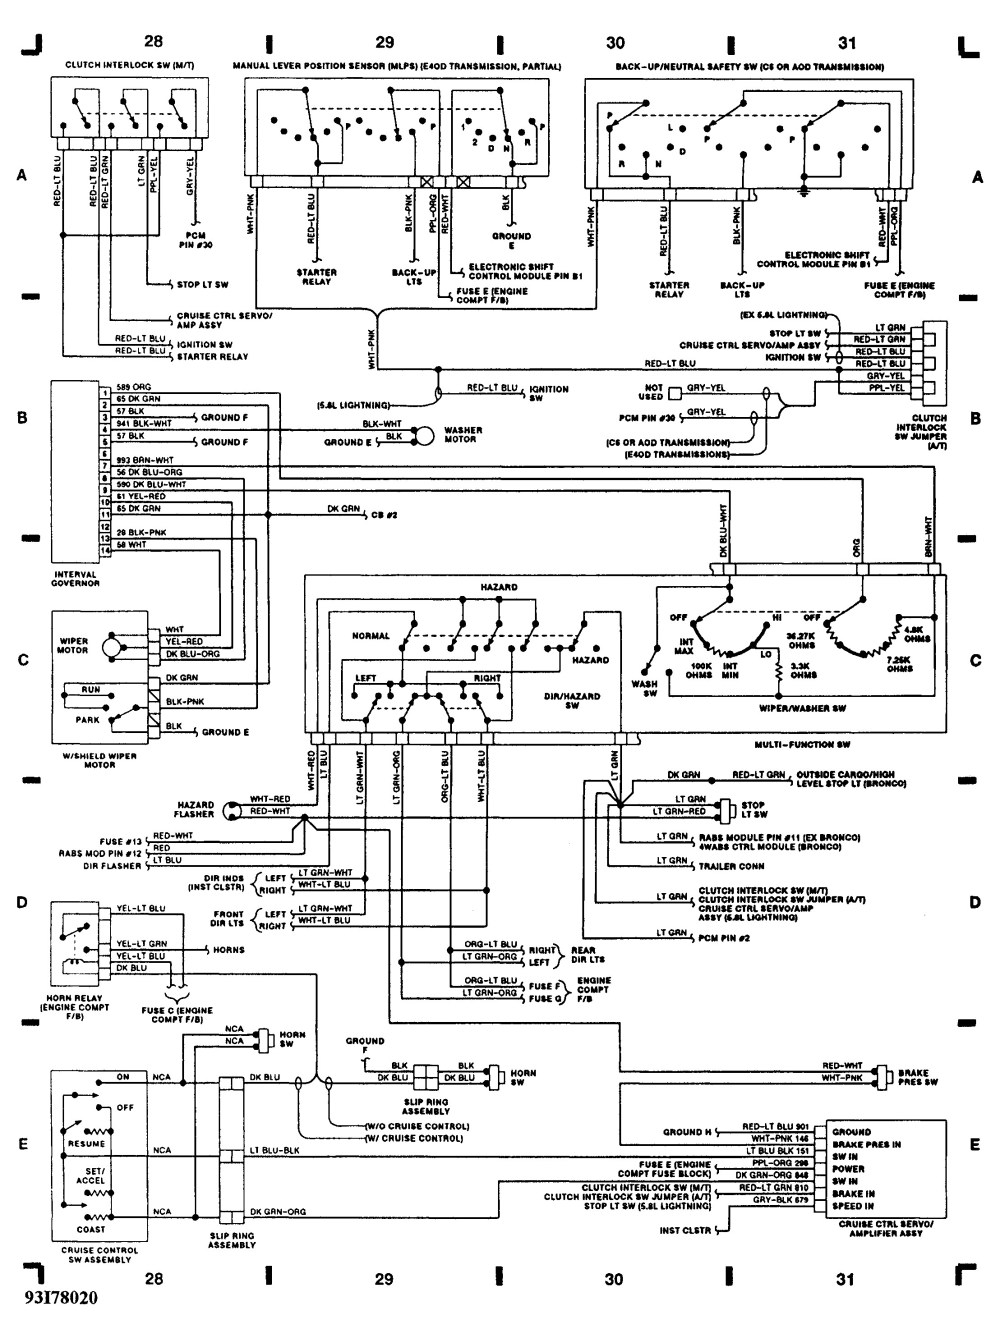 medium resolution of ficm wiring diagram wiring diagram mega 2006 ford f350 6 0 diesel wiring diagram 6 0 powerstroke